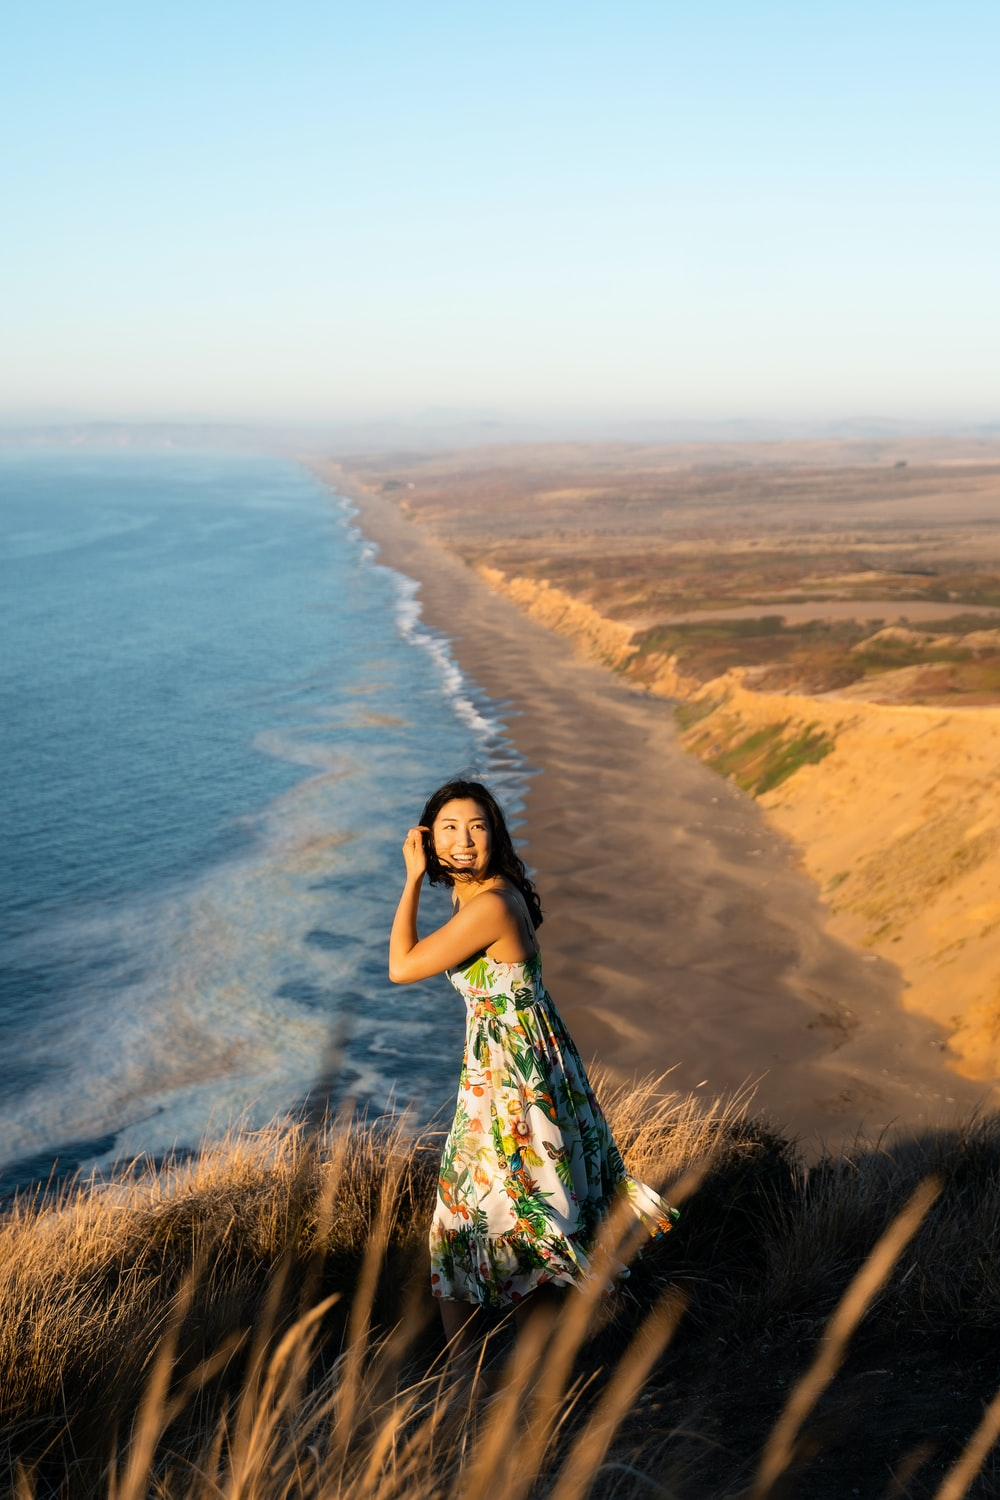 woman standing on mountain grass overviewing shoreline